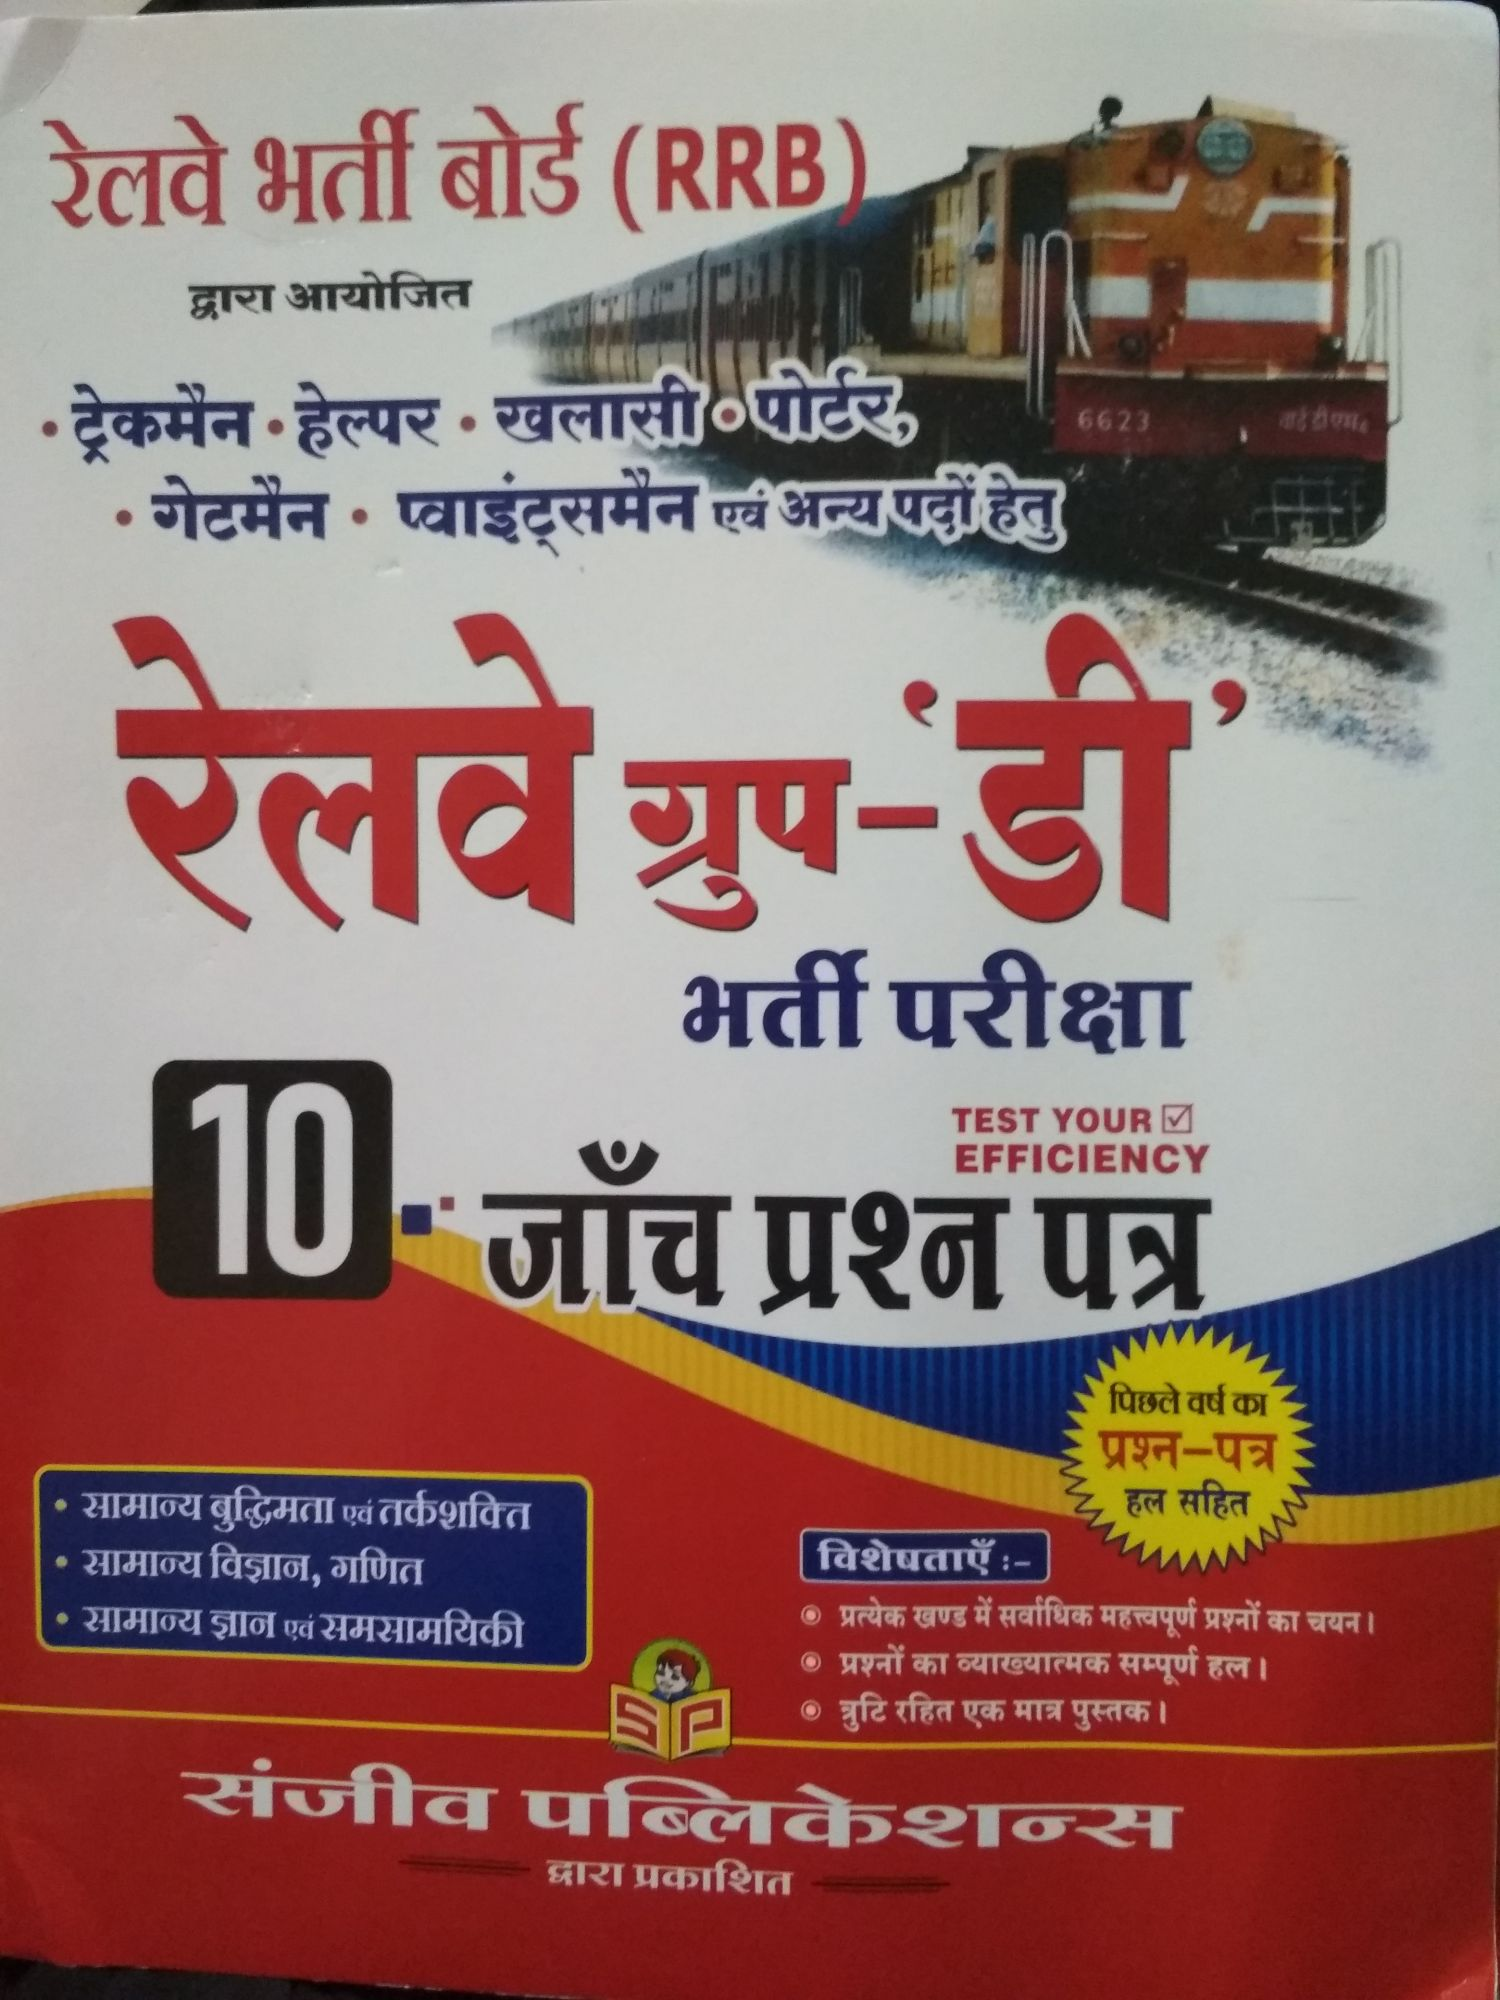 RRB Group D Exam Book Railway 10 Practice Test Paper By Shanjeev parkhsan  in hindi medium